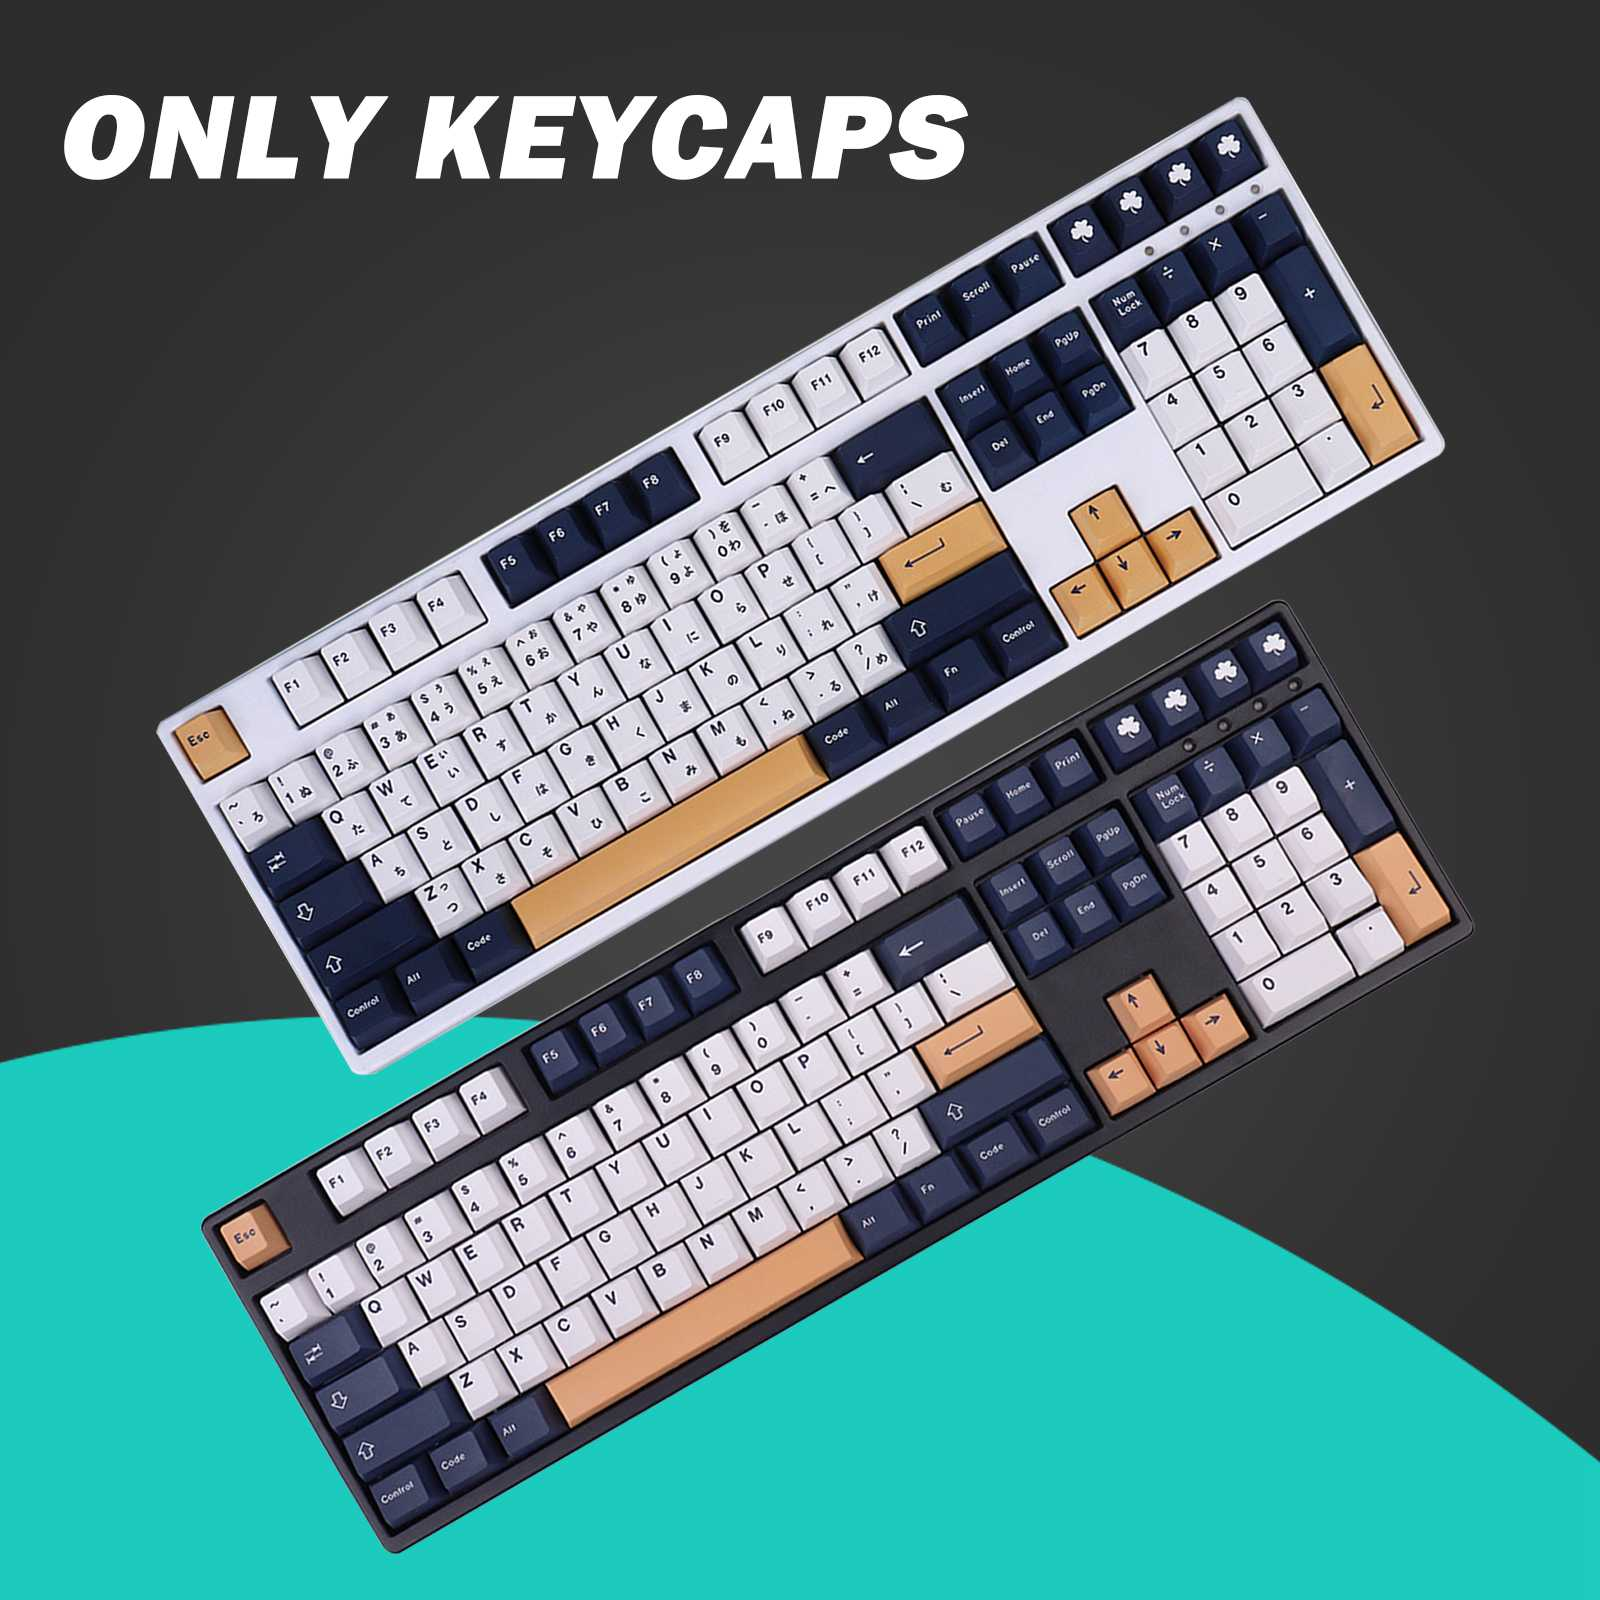 g mky red samurai 160 keys cherry profile keycap double shot thick pbt keycaps for mx switch mechanical keyboard 129 Keys PBT Keycap Cherry Profile DYE-SUB Personalized Rudy Keycaps For Mechanical Keyboard Anne Pro 2/GK61